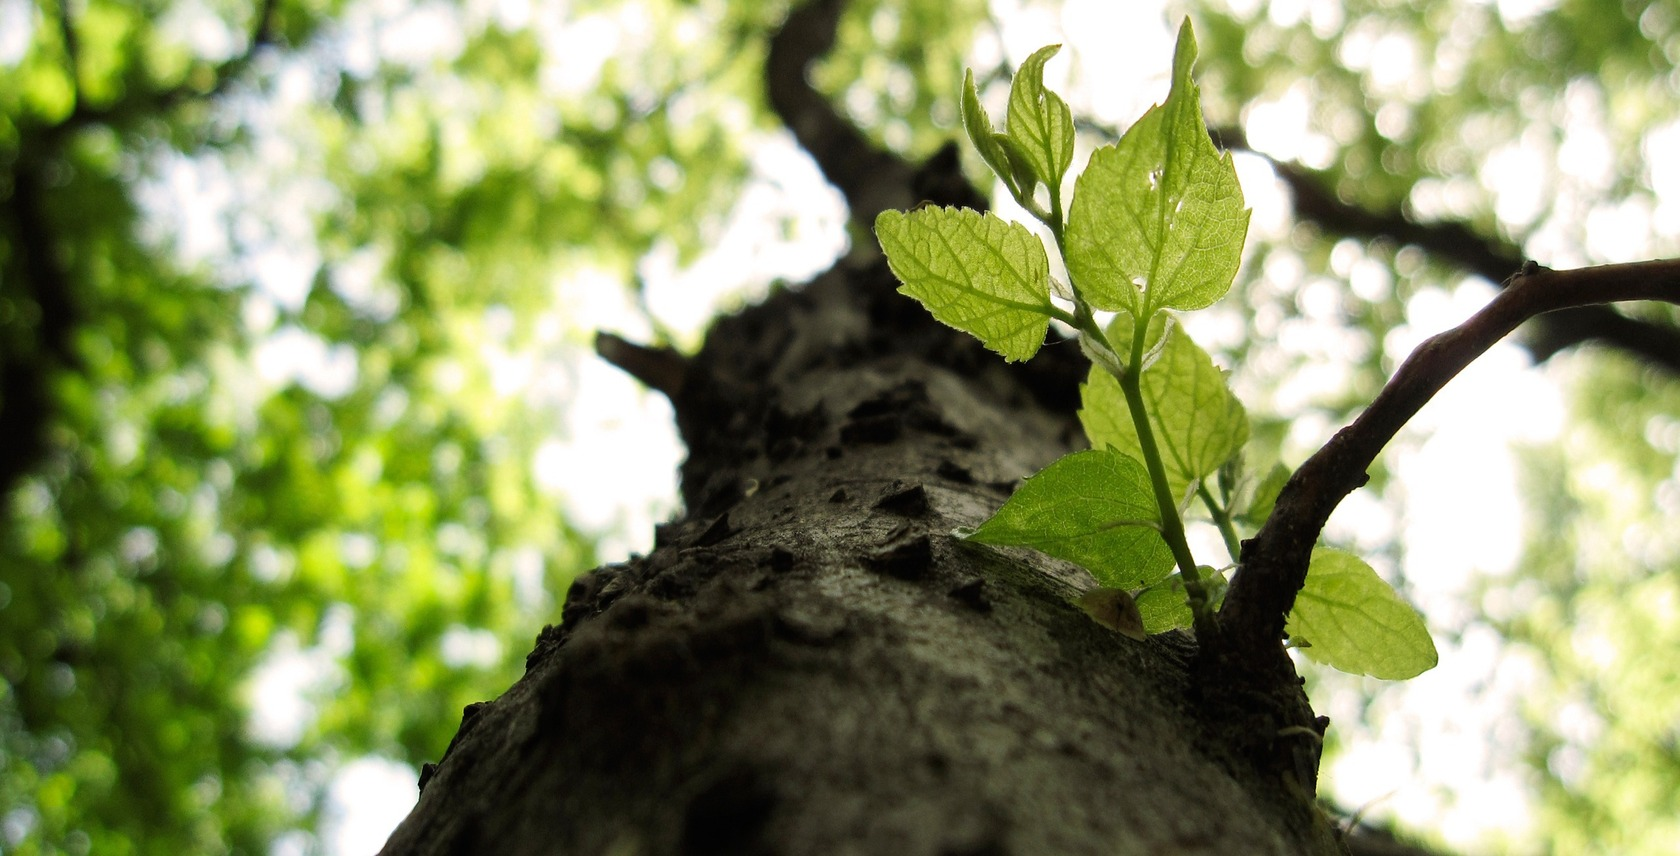 web design like planting a fresh tree